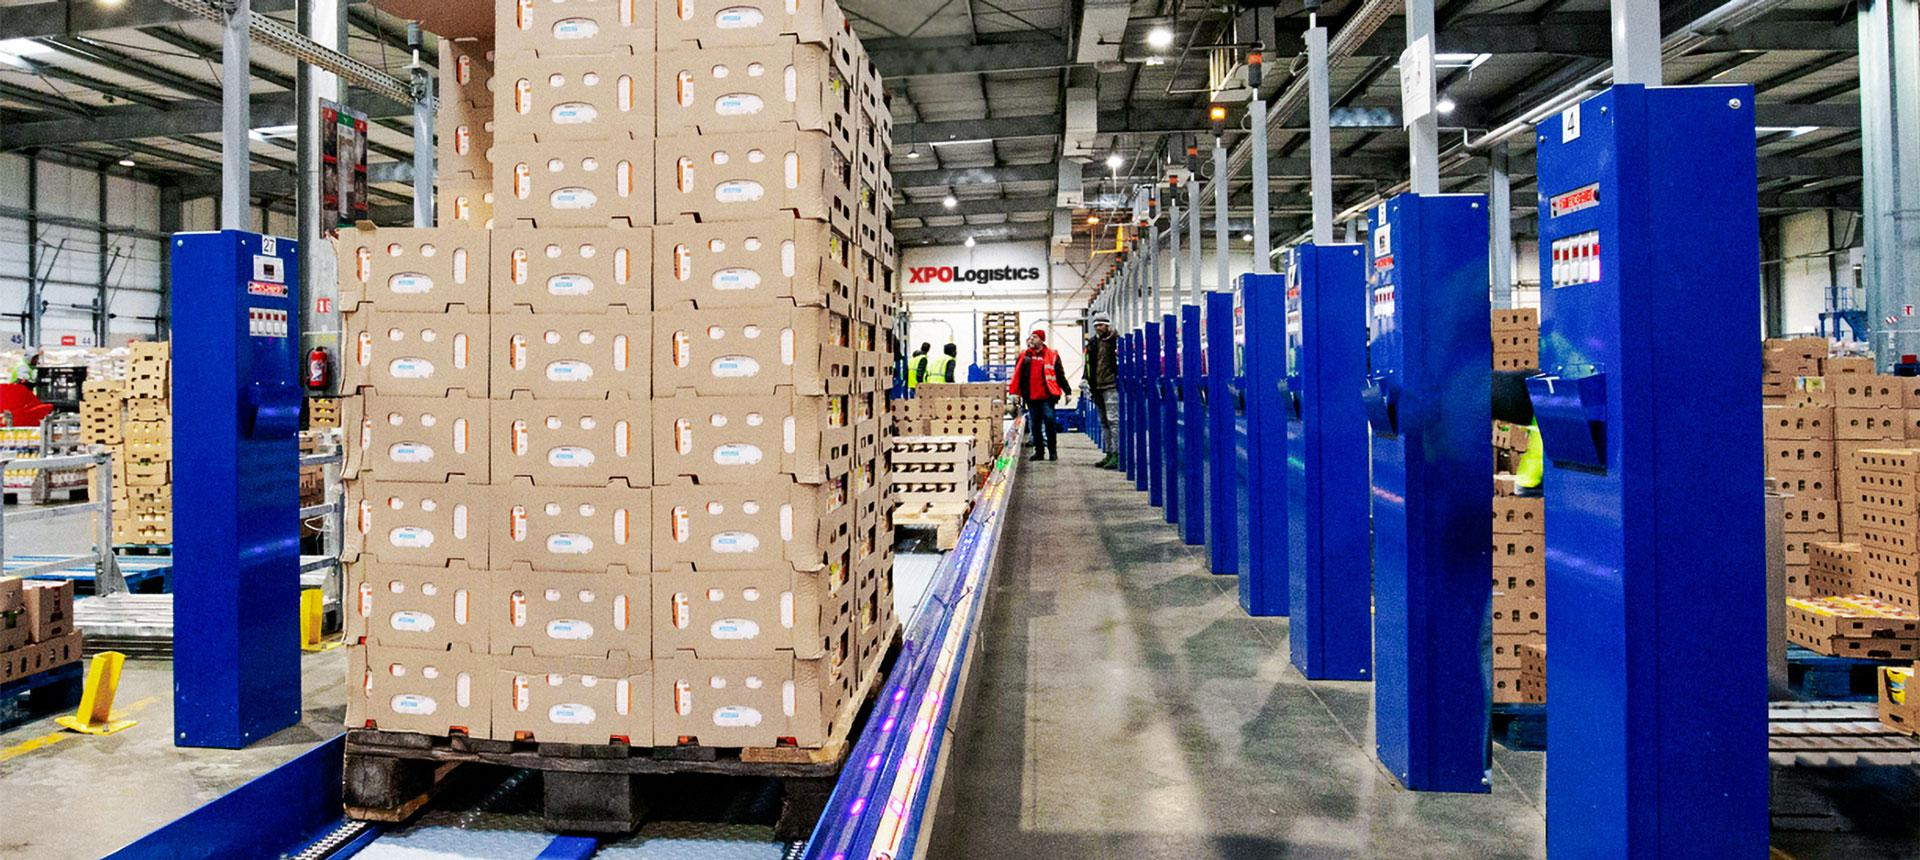 an XPO Logistics worker watches a conveyor line at a distribution center.